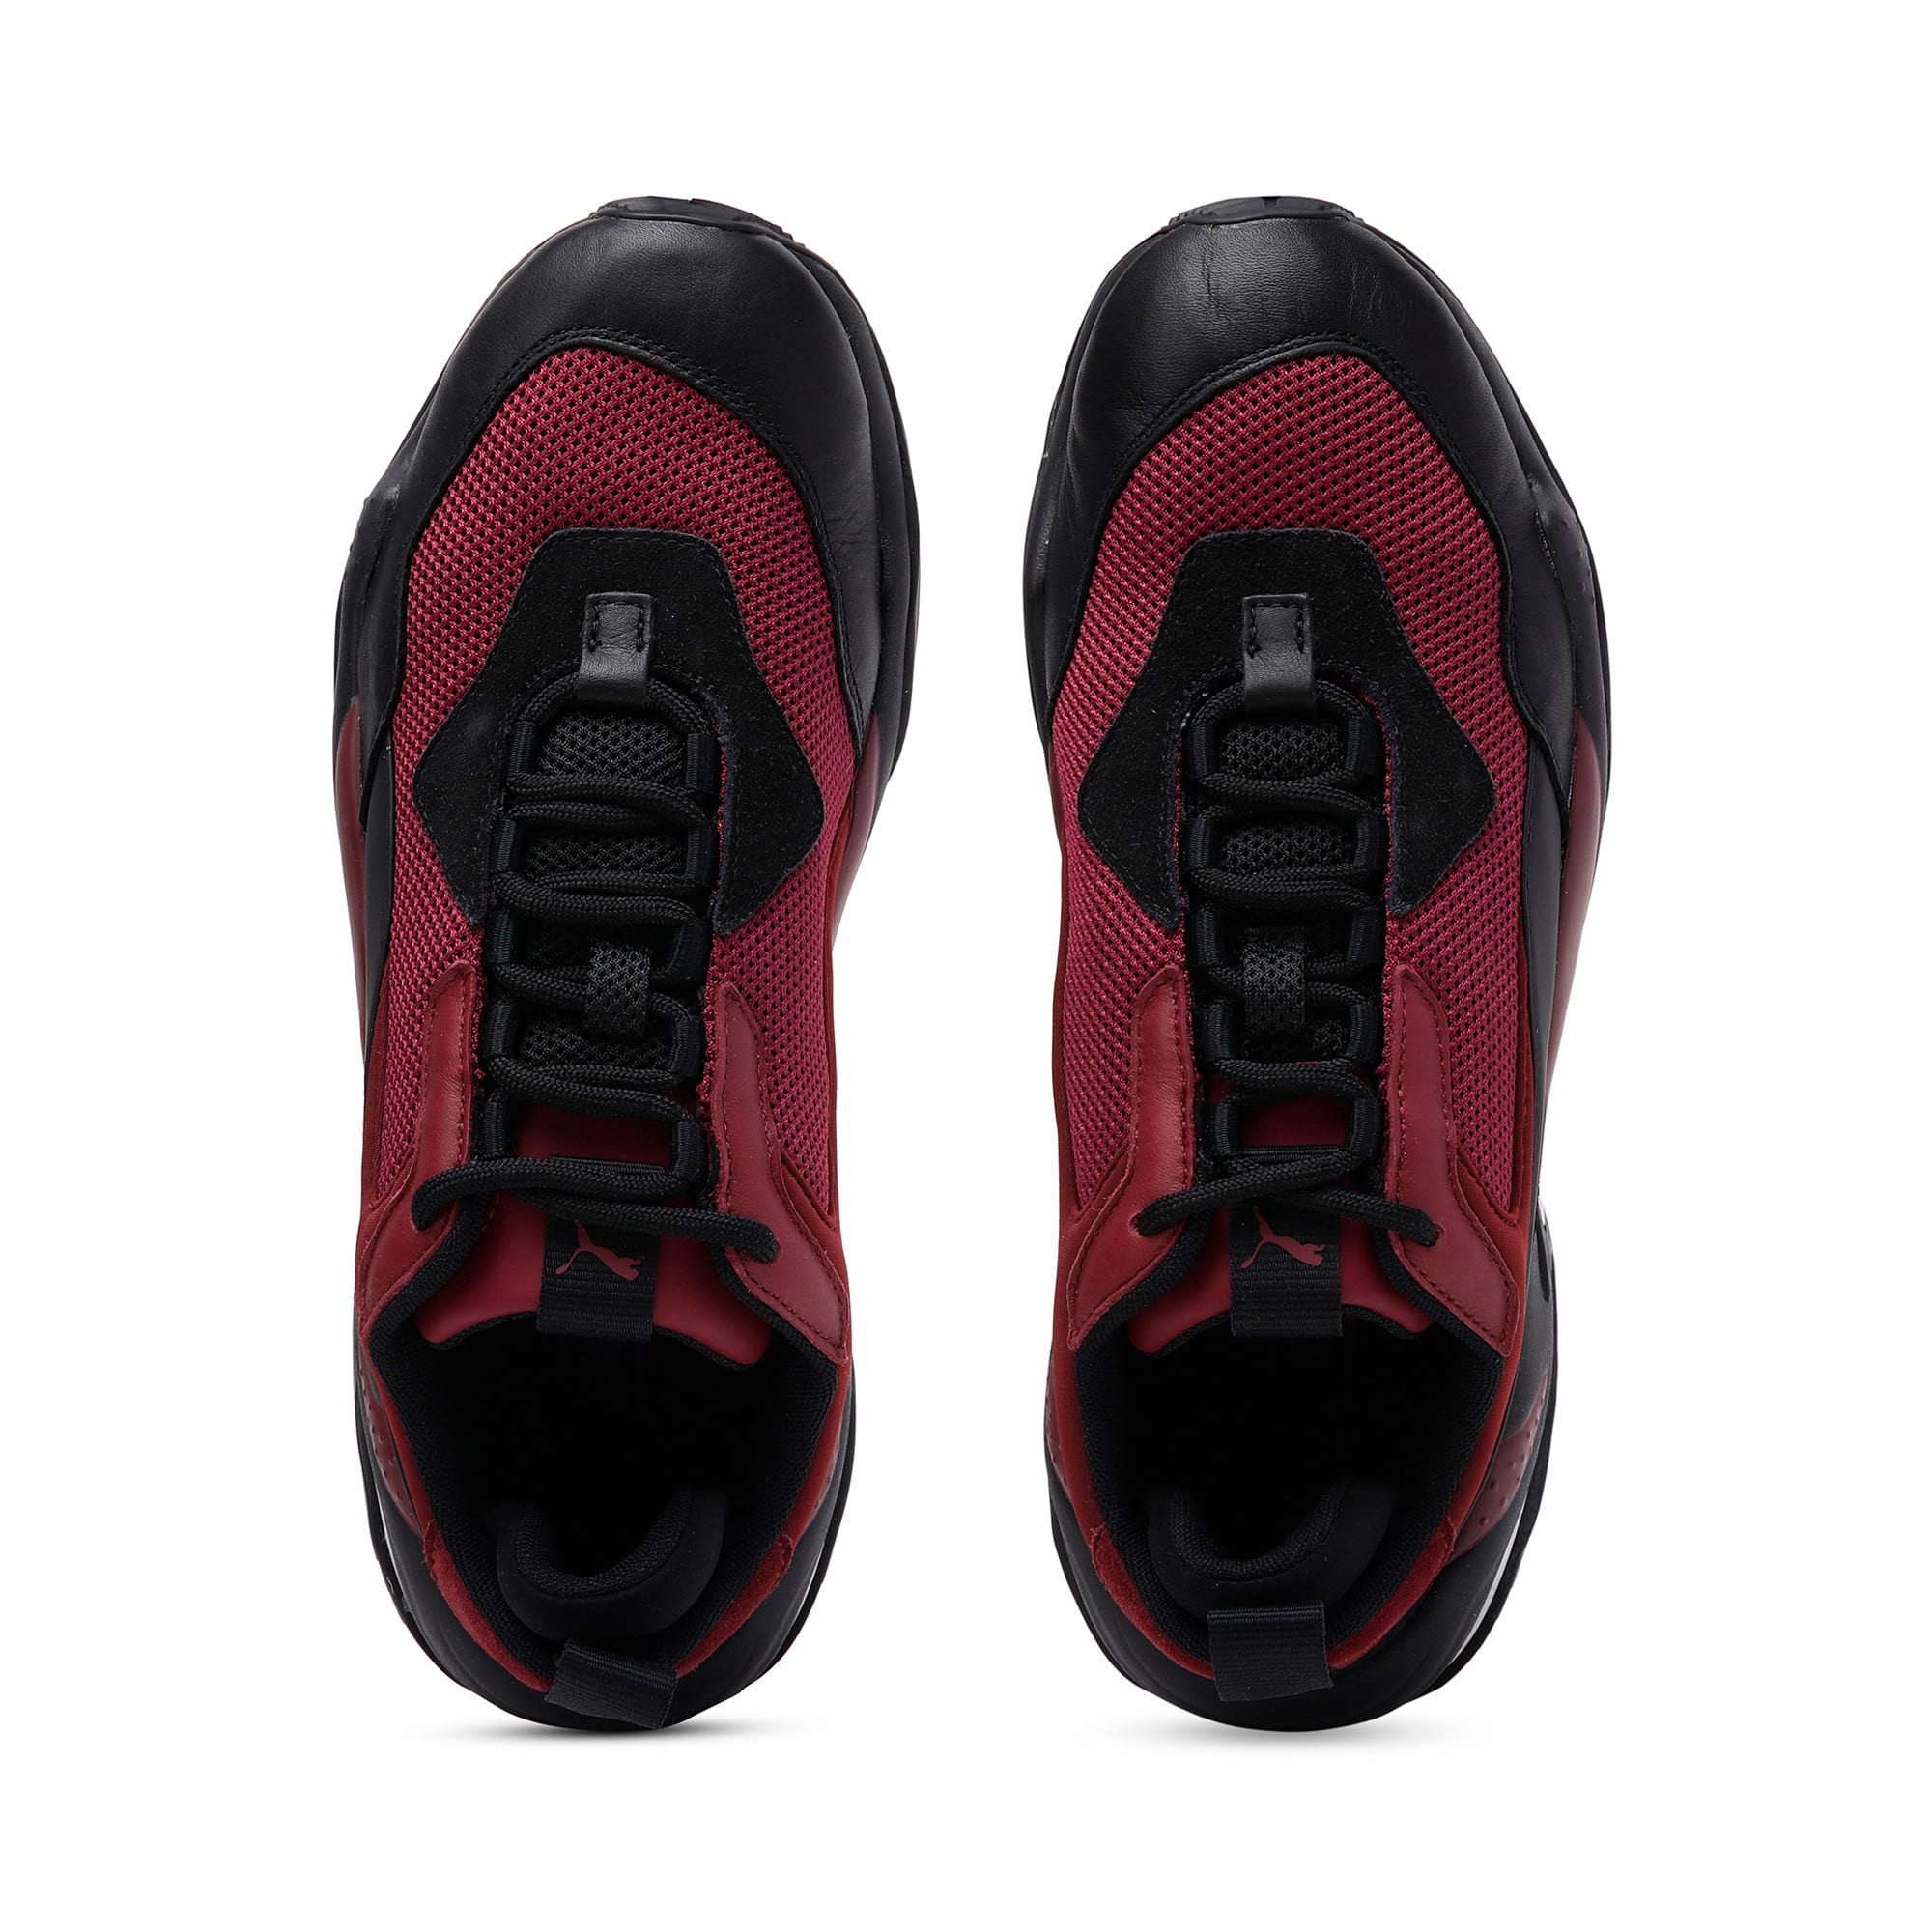 Thumbnail 6 of Thunder Spectra Trainers, Rhododendron-P Black-T Port, medium-IND